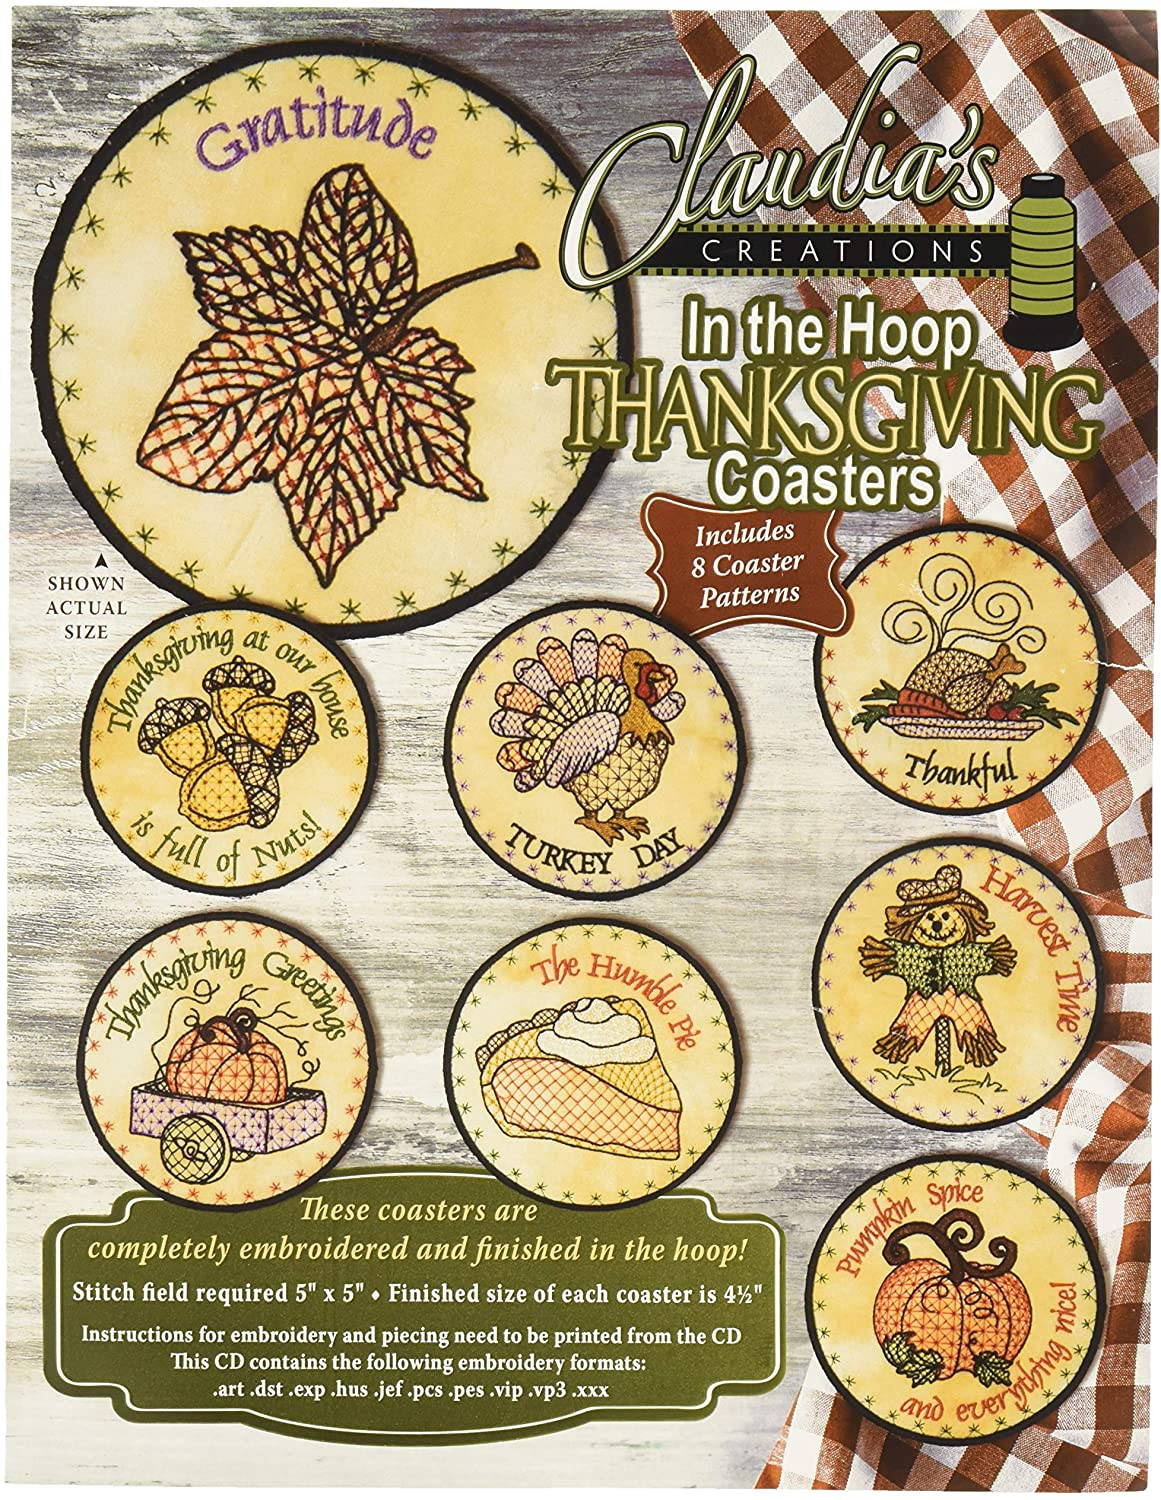 Claudia's Creations In The Hoop Thanksgiving Coasters Pattern